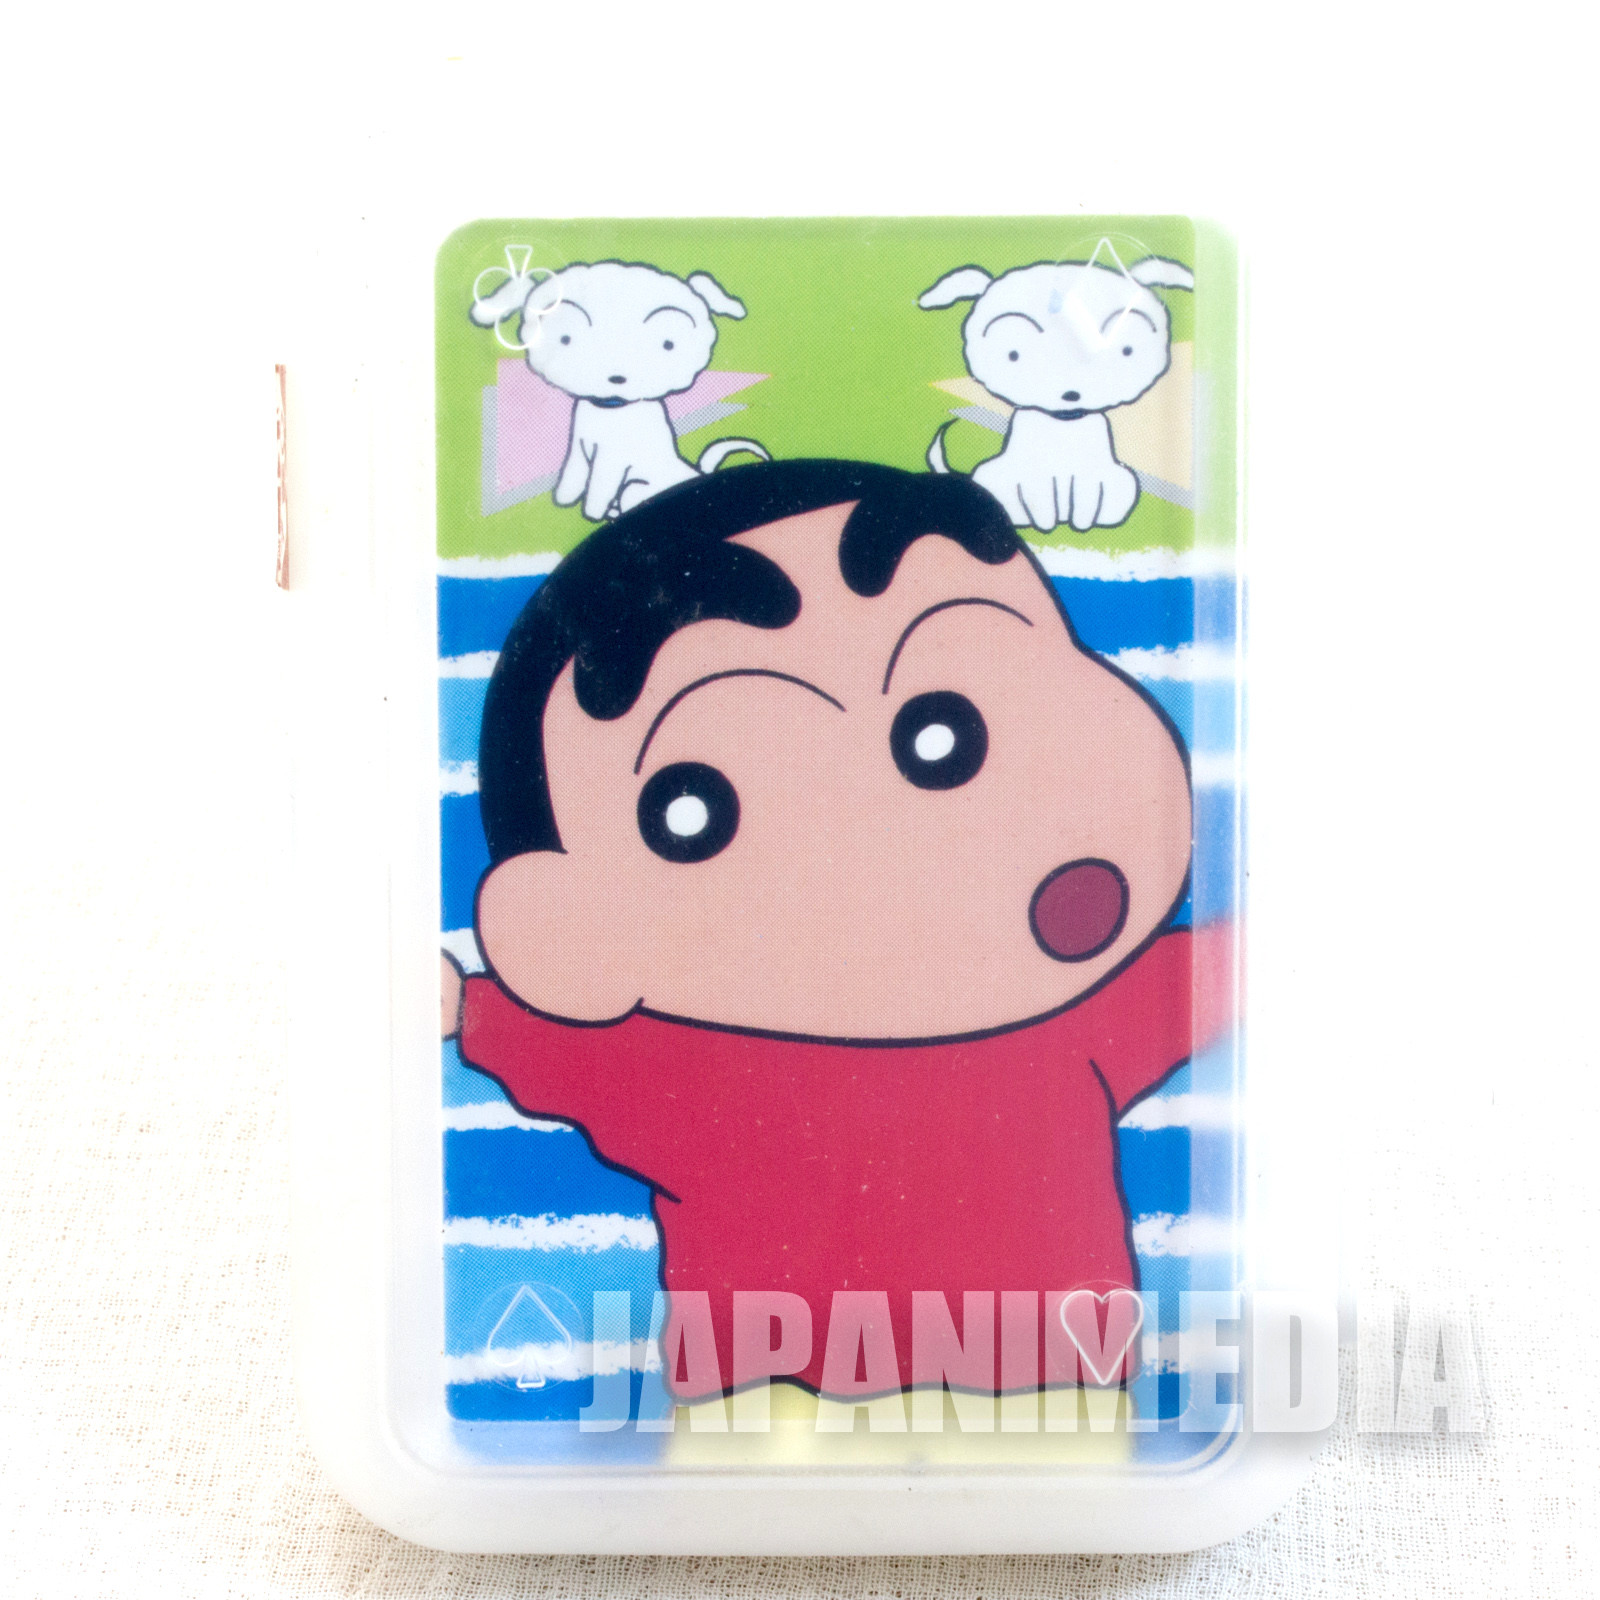 Crayon Shin-chan Small Size Playing Card Trump JAPAN ANIME